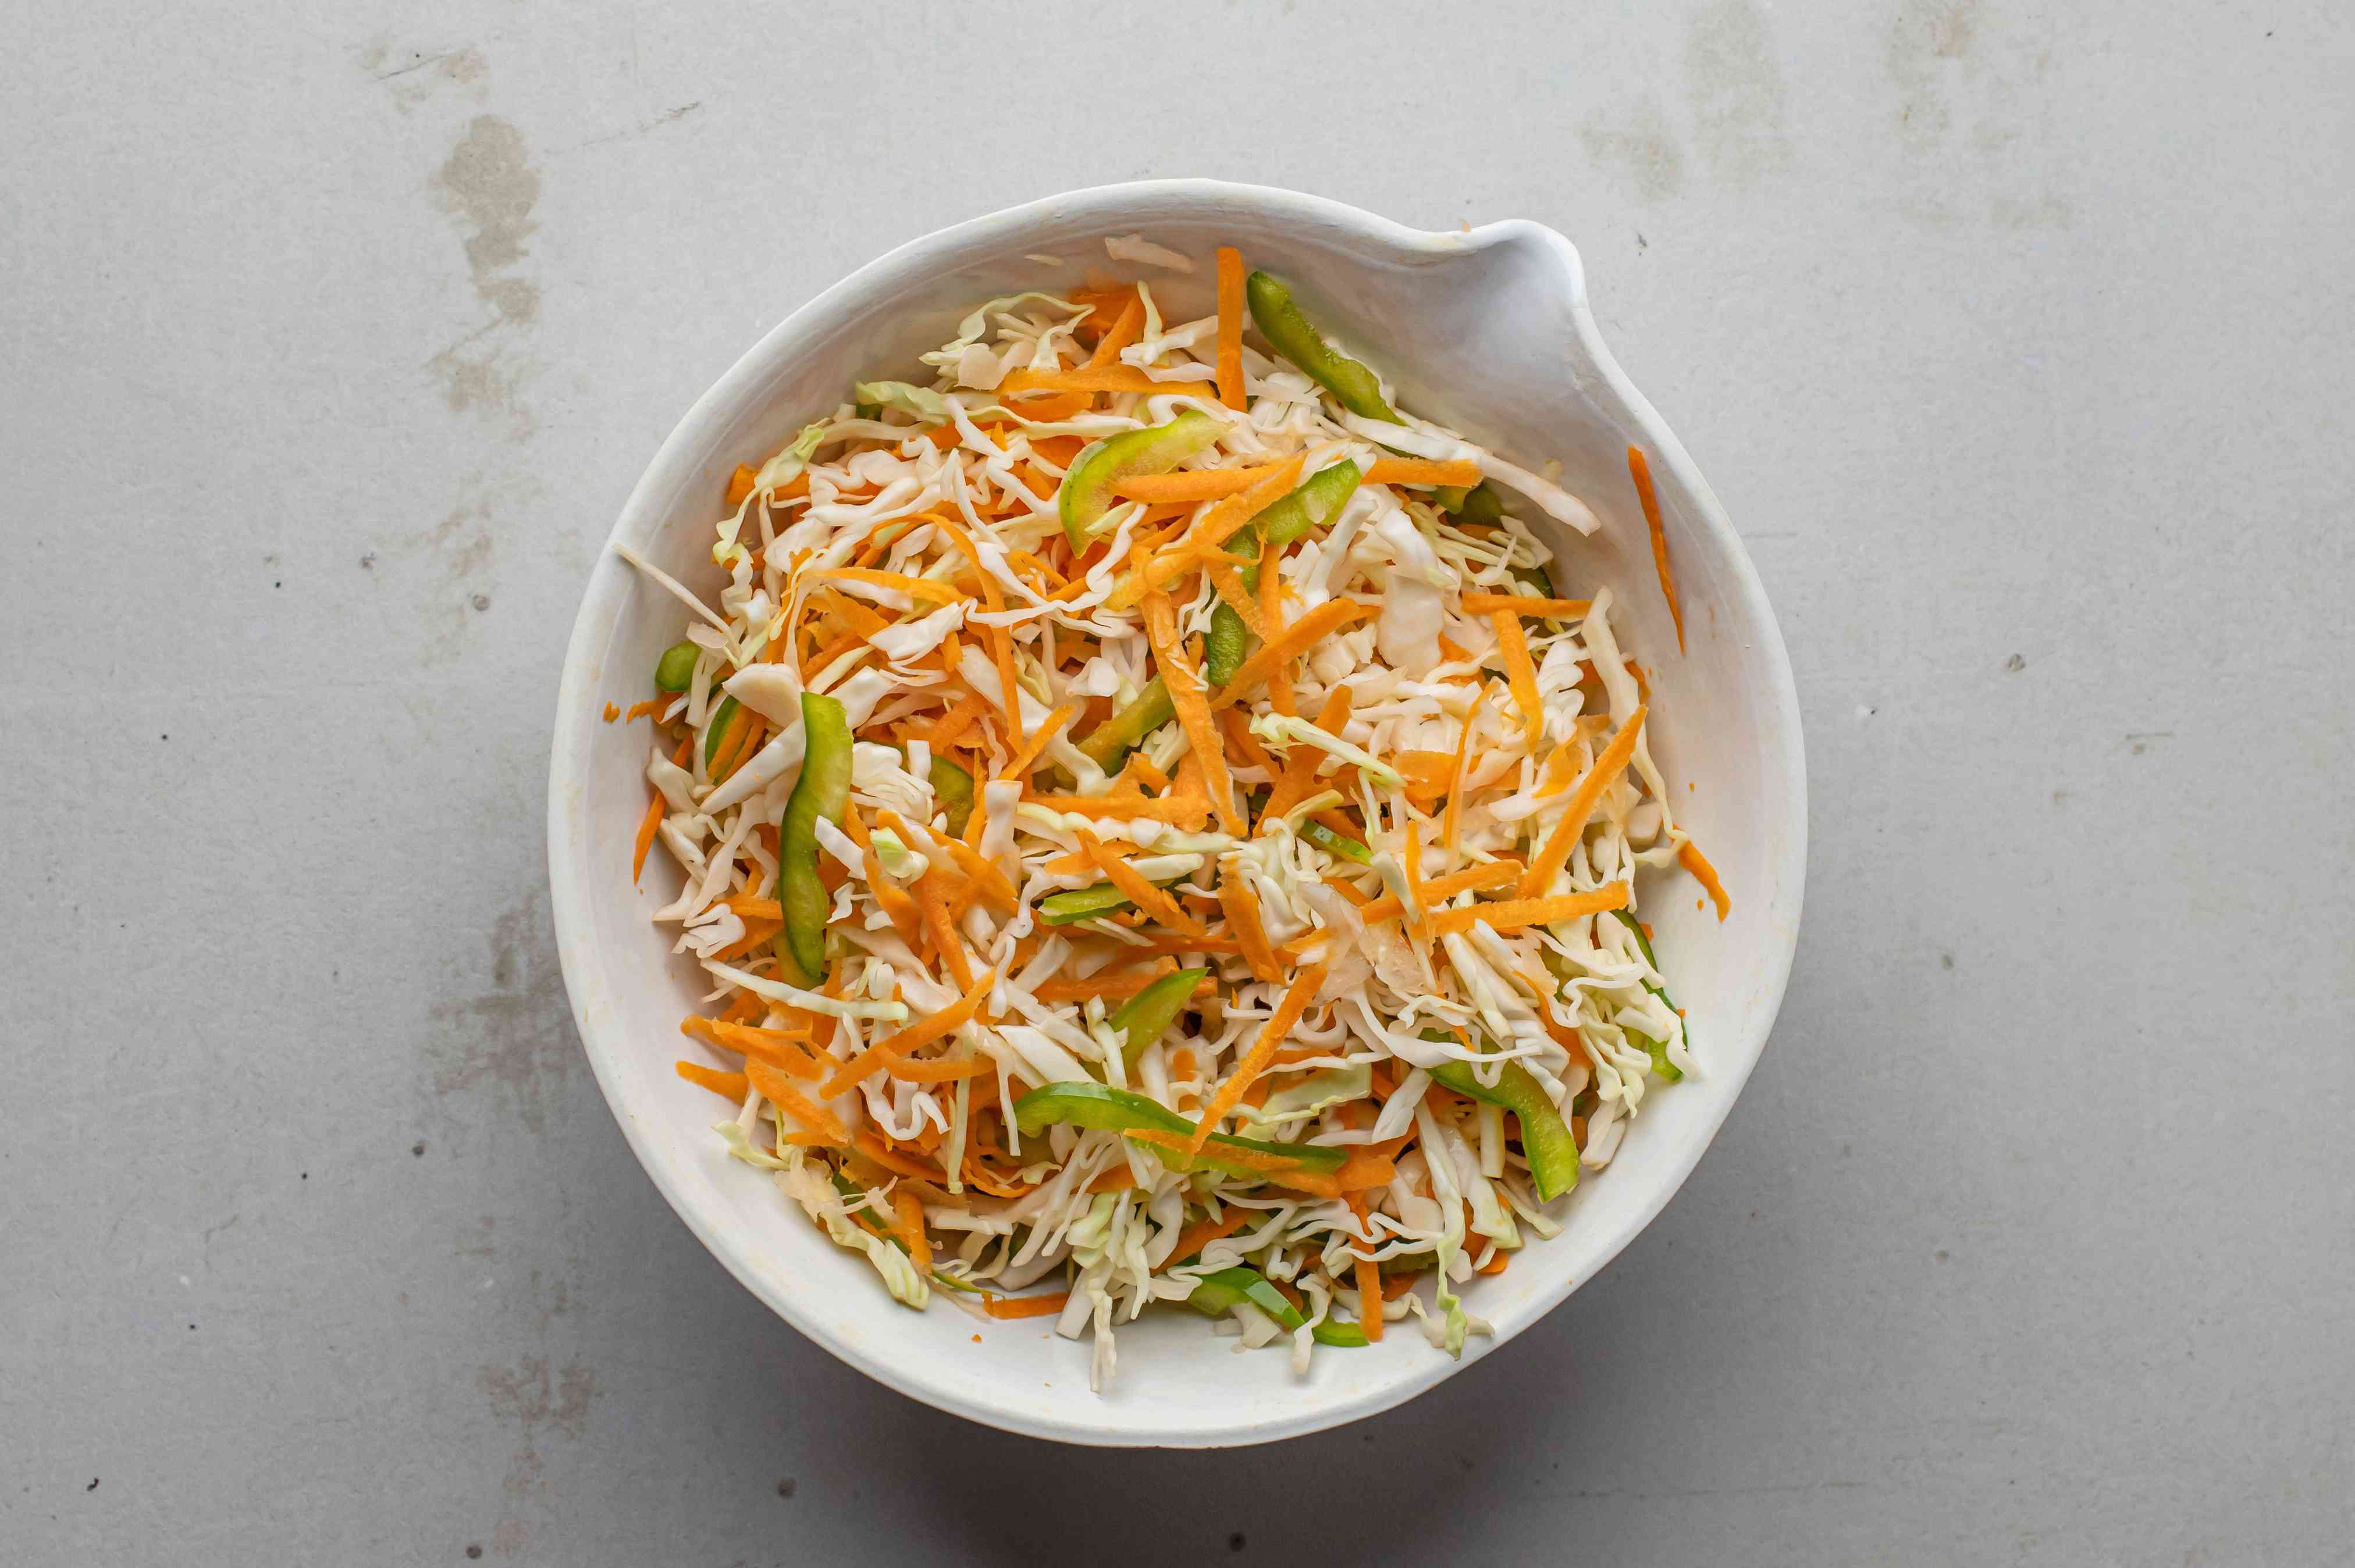 Toss the shredded cabbage